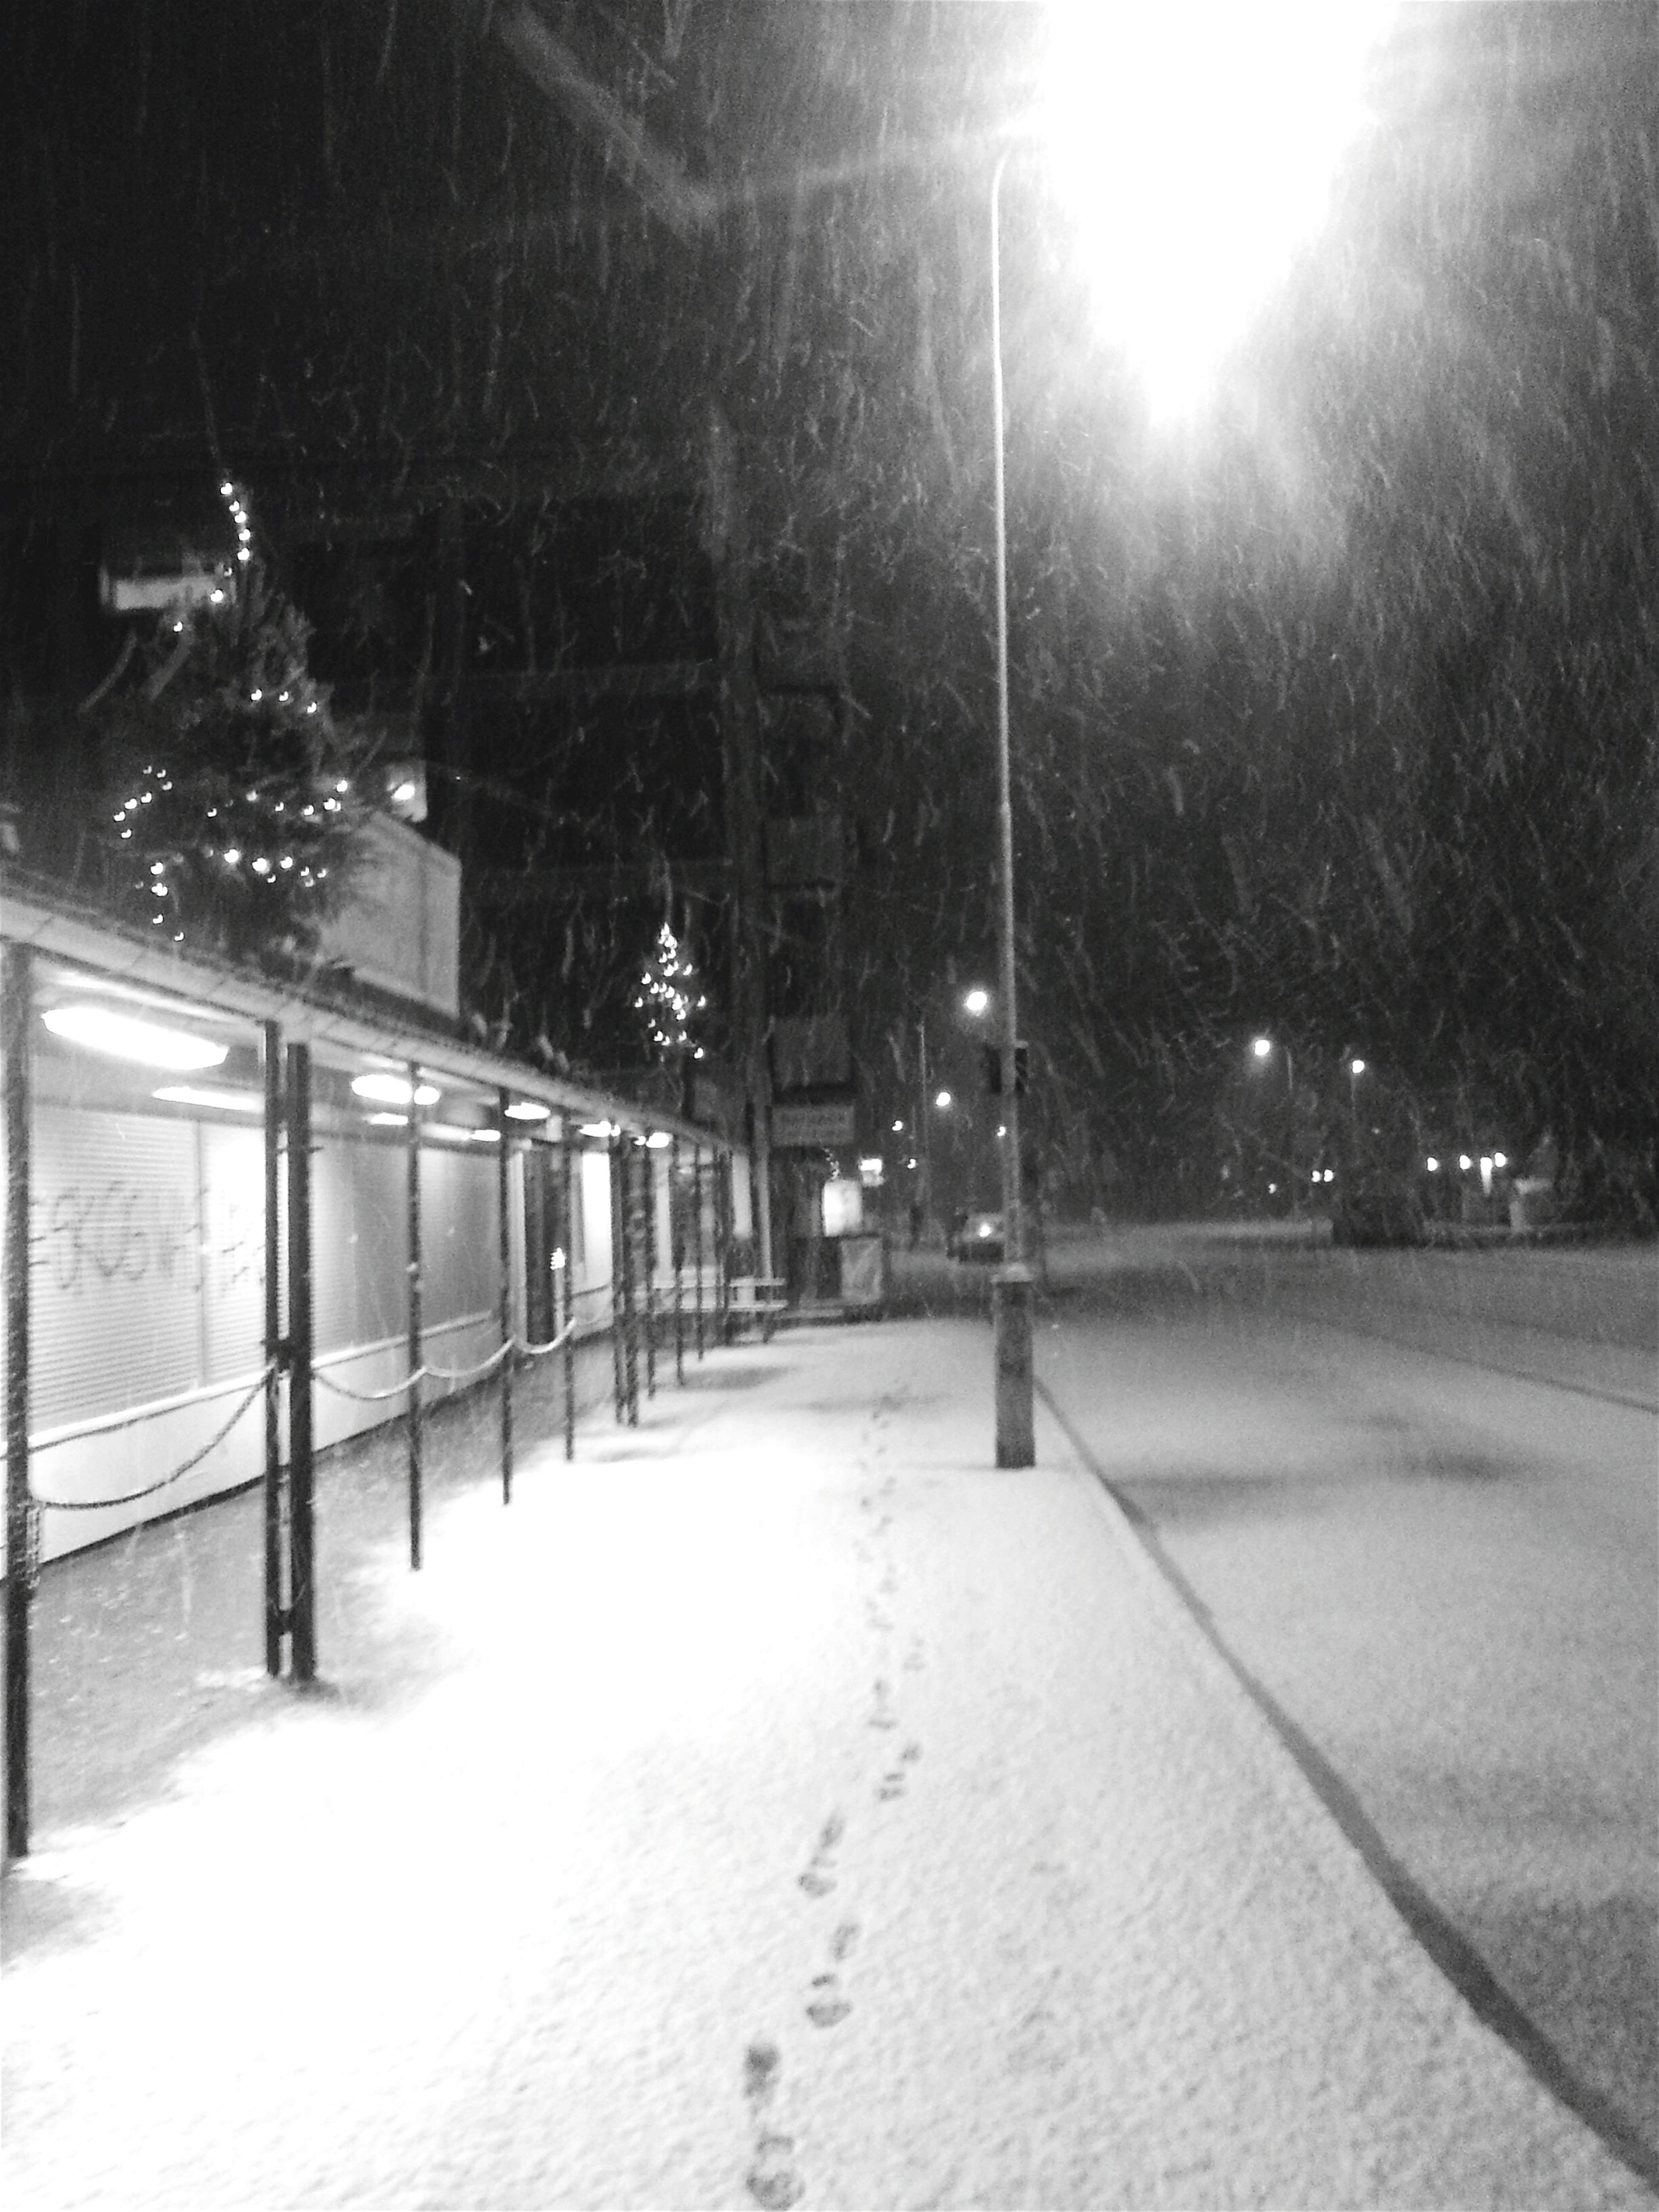 B&w Street Photography Footprints In The First Snow Snowfall In Streetlight At Night Emty Street At Snowy Night Android Image Of Street By Night Suburb Street At Snowy Night Footprint In Black Street In White